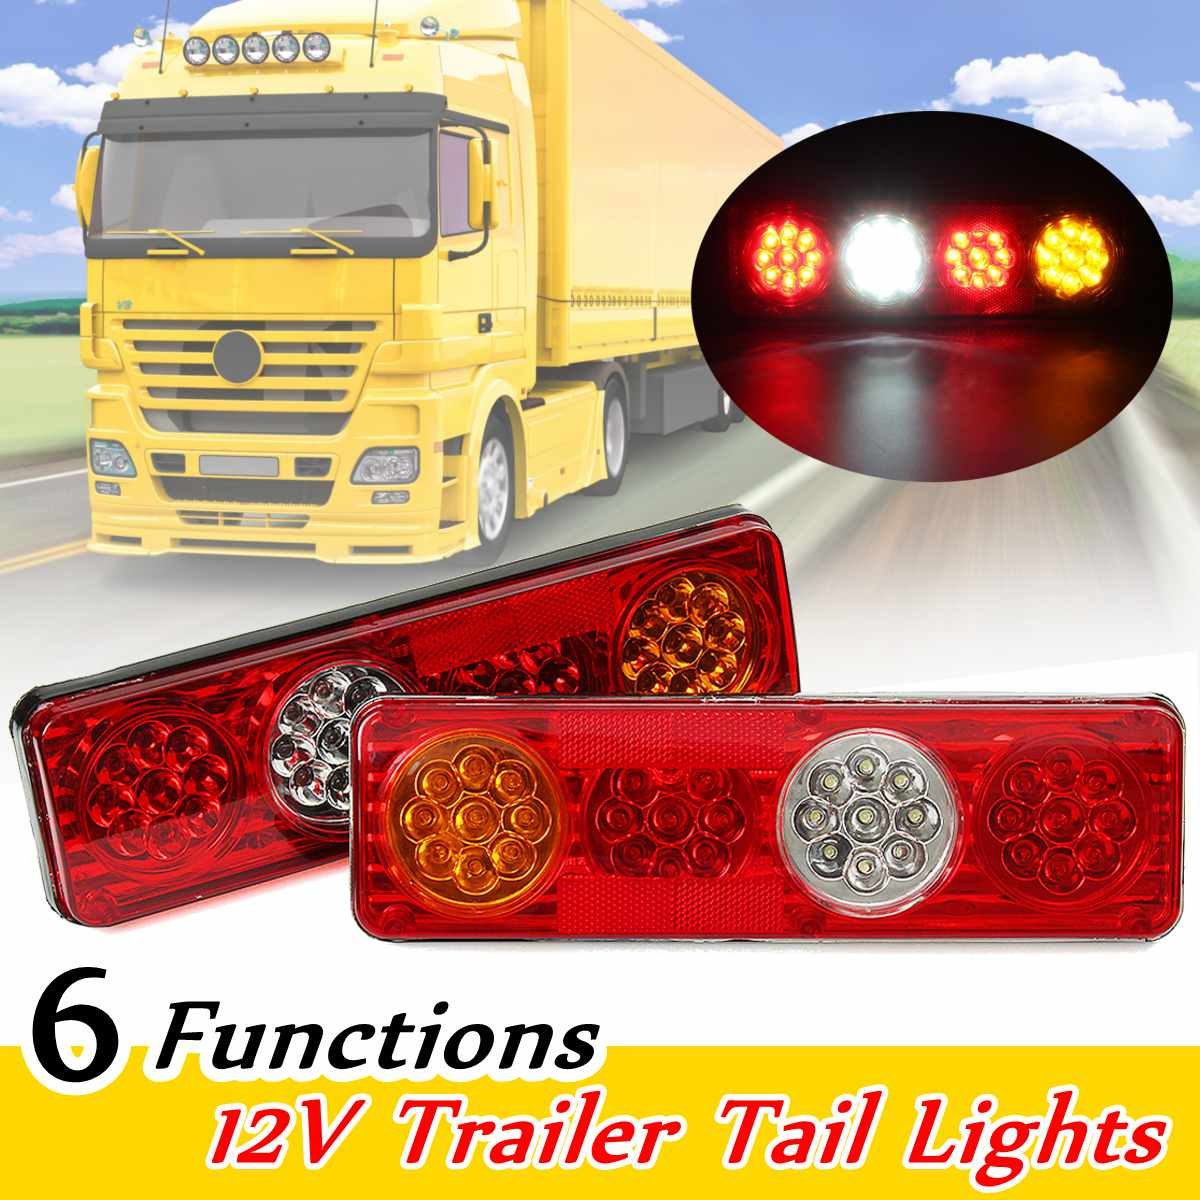 12V 6 Functions 36 LED Rear Tail Lights Lamp Trailer Caravan Truck Lorry кроссовки asicstiger asicstiger as009aujhk94